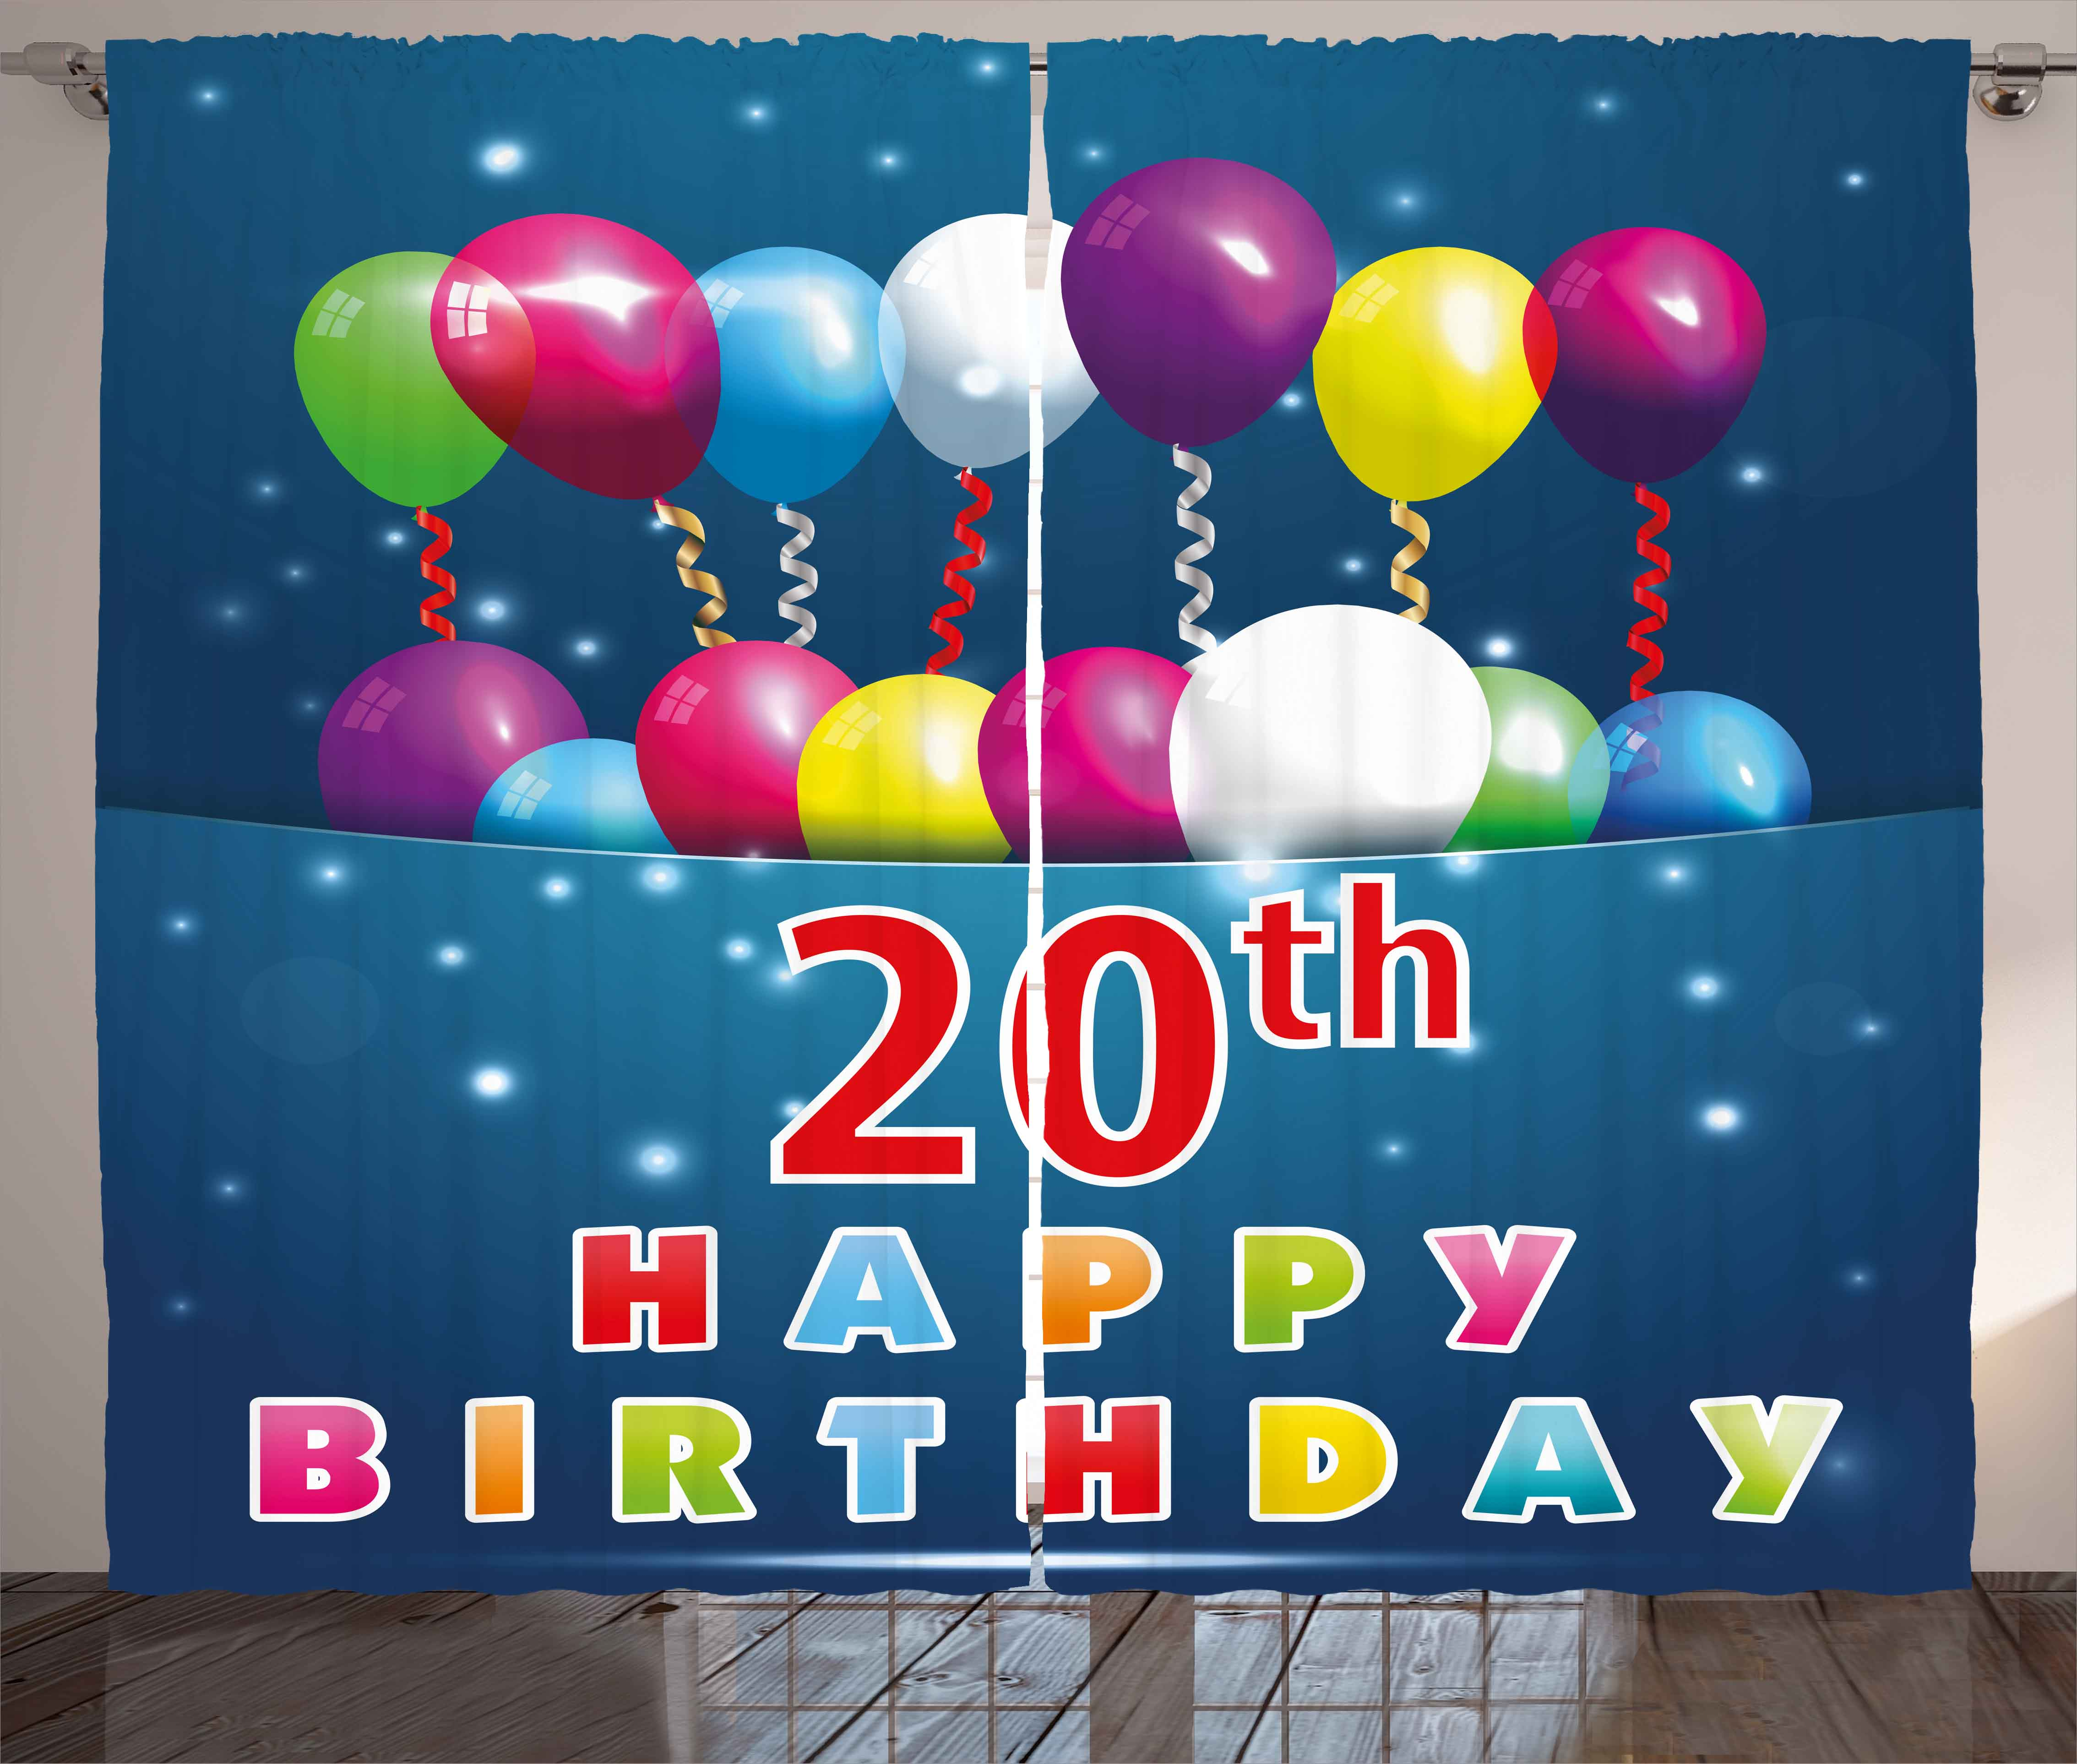 20th Birthday Decorations Curtains 2 Panels Set Sweet 20 Party With Colorful Balloons On Blue Backdrop Window Drapes For Living Room Bedroom